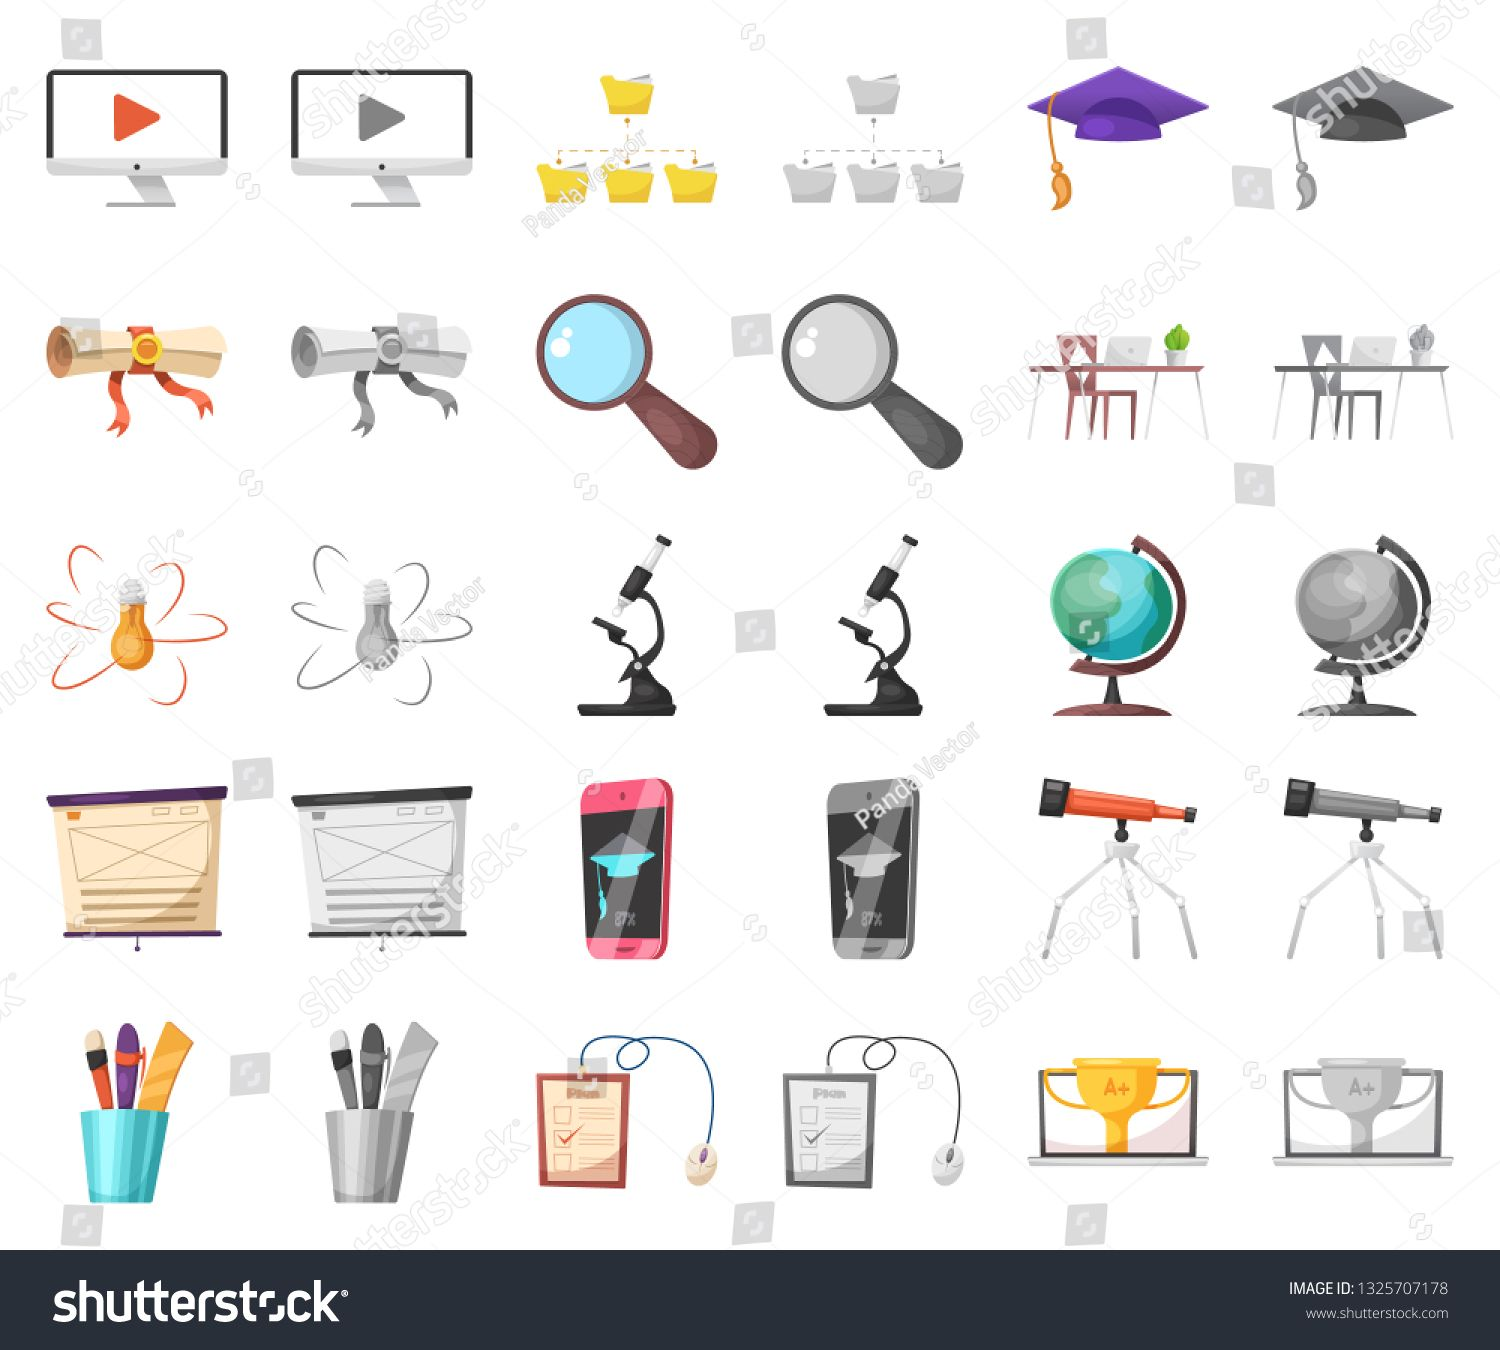 Vector Design Of Education And Learning Symbol Set Of Education And School Stock Symbol For Web Ad Ad Education Lea Stock Symbols Vector Design Symbols